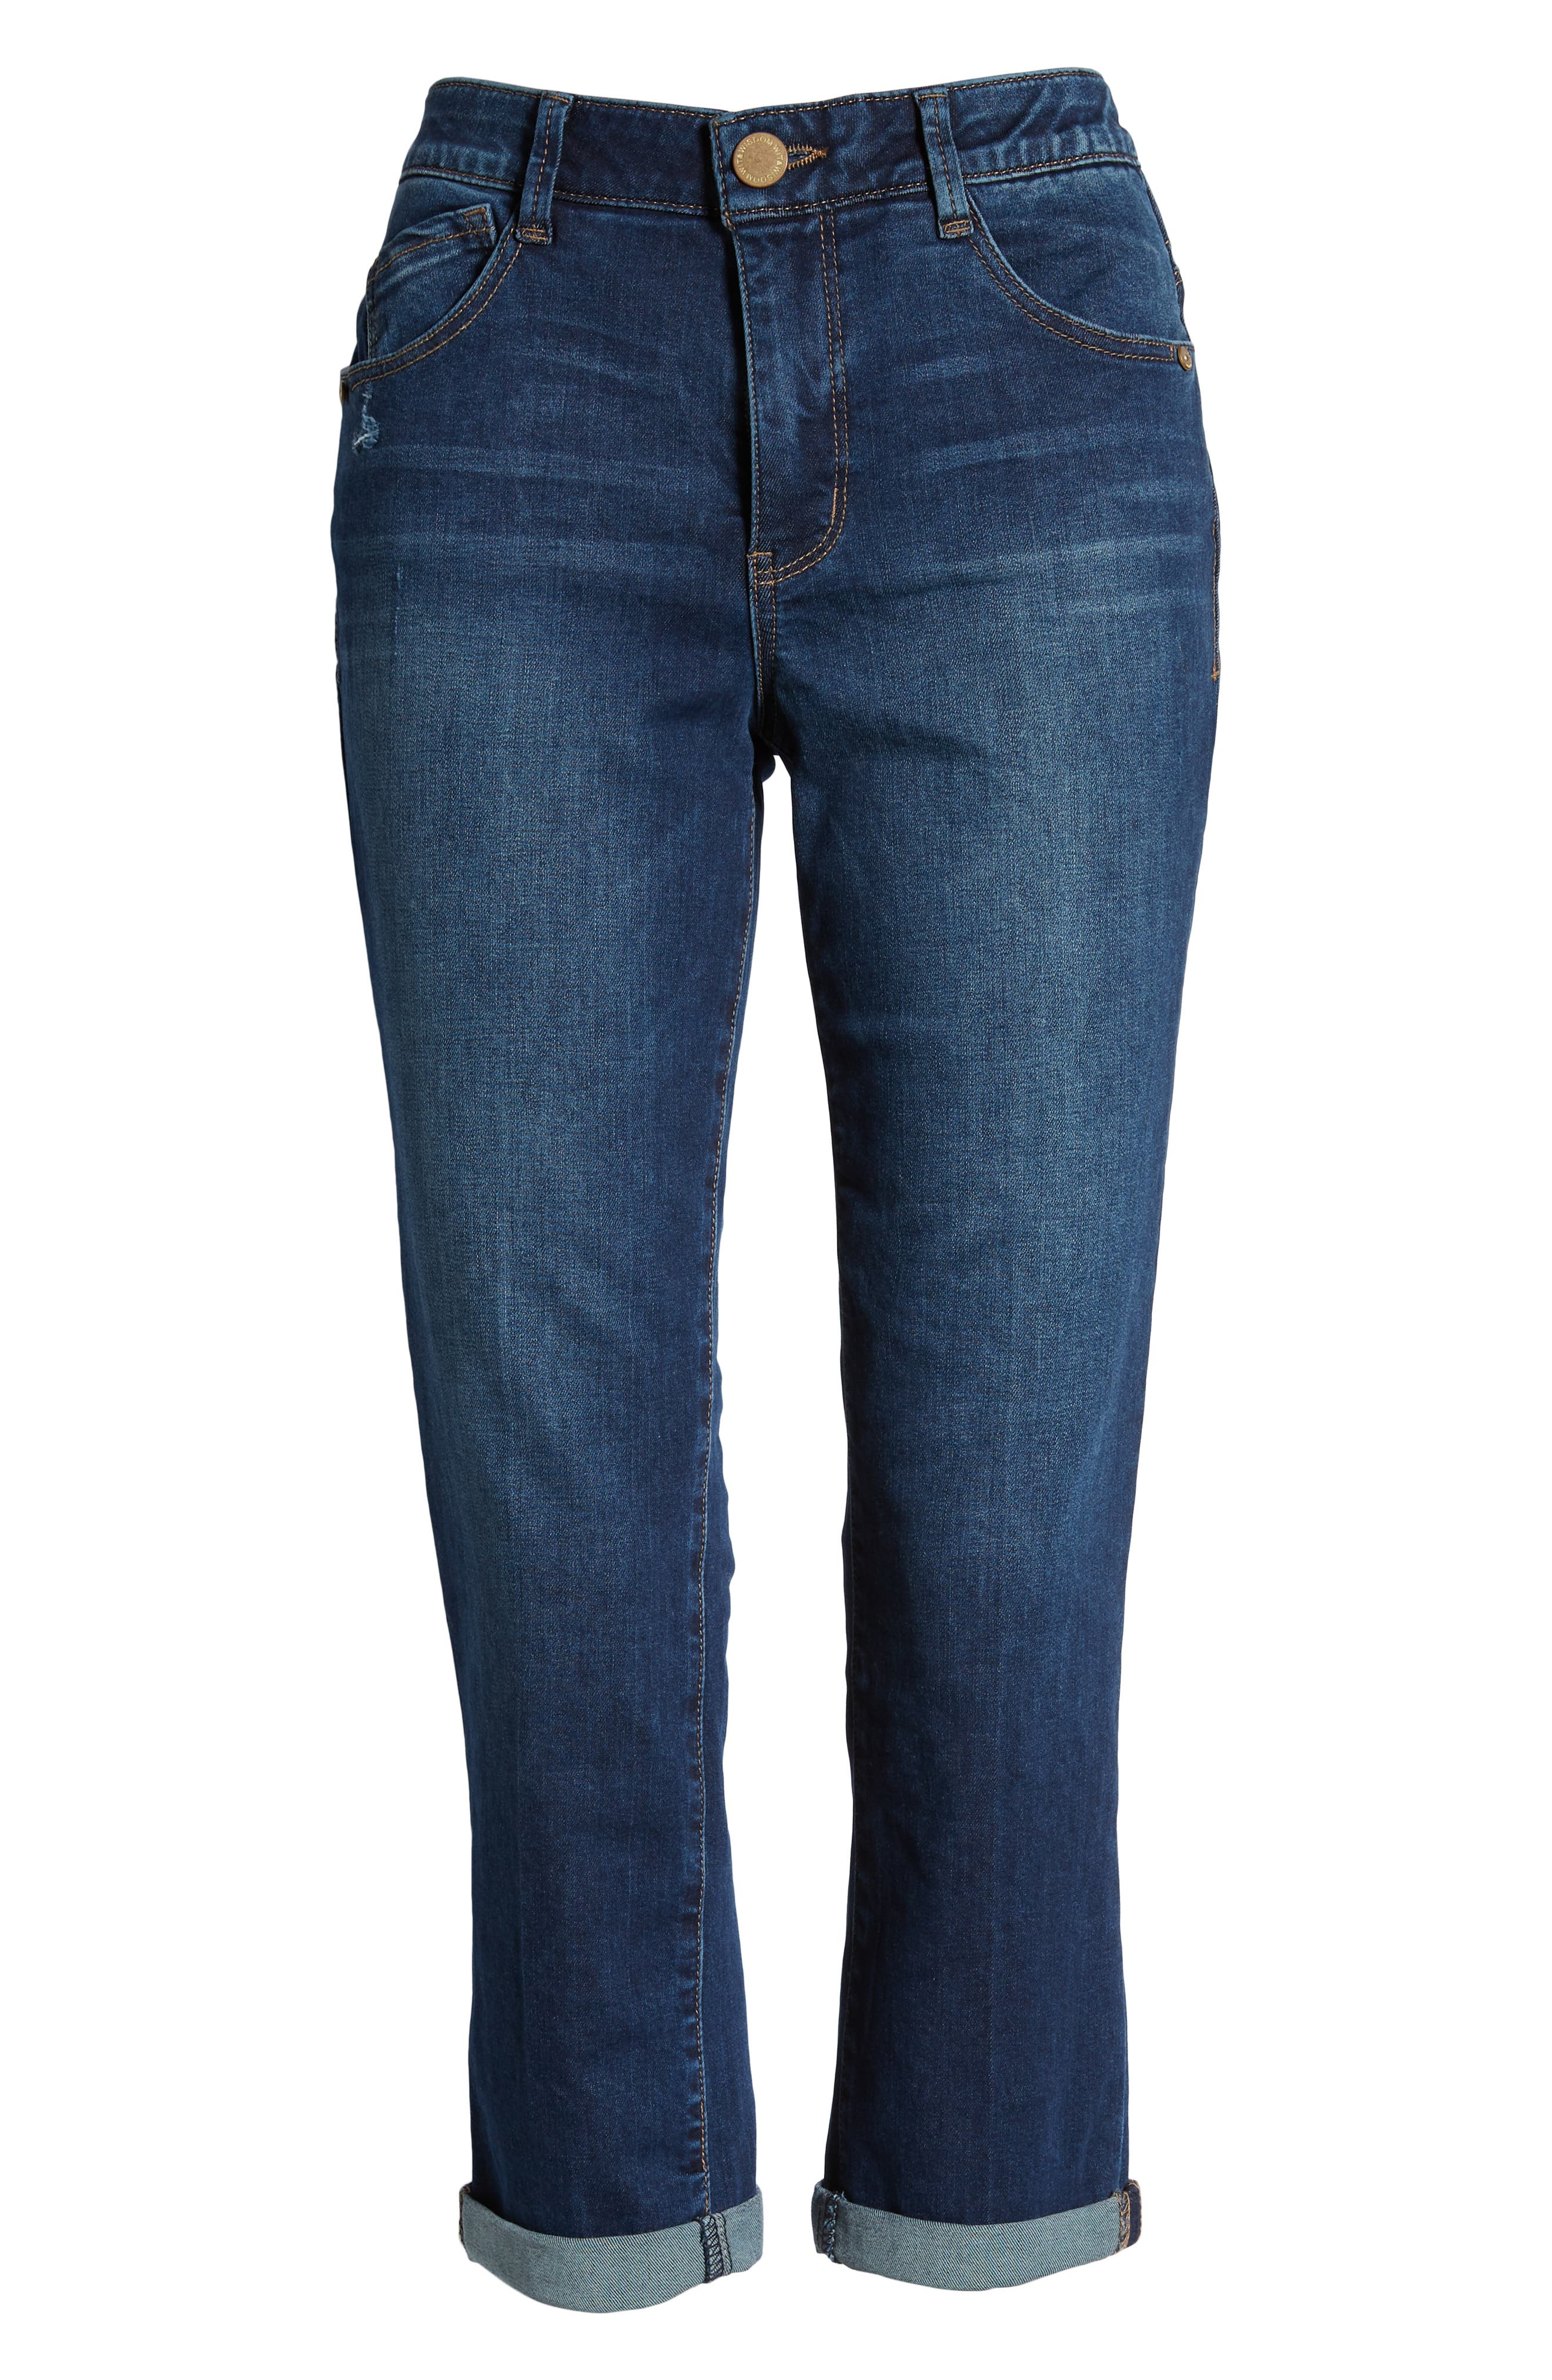 Luxe Touch High Waist Crop Skinny Jeans,                             Alternate thumbnail 7, color,                             BLUE